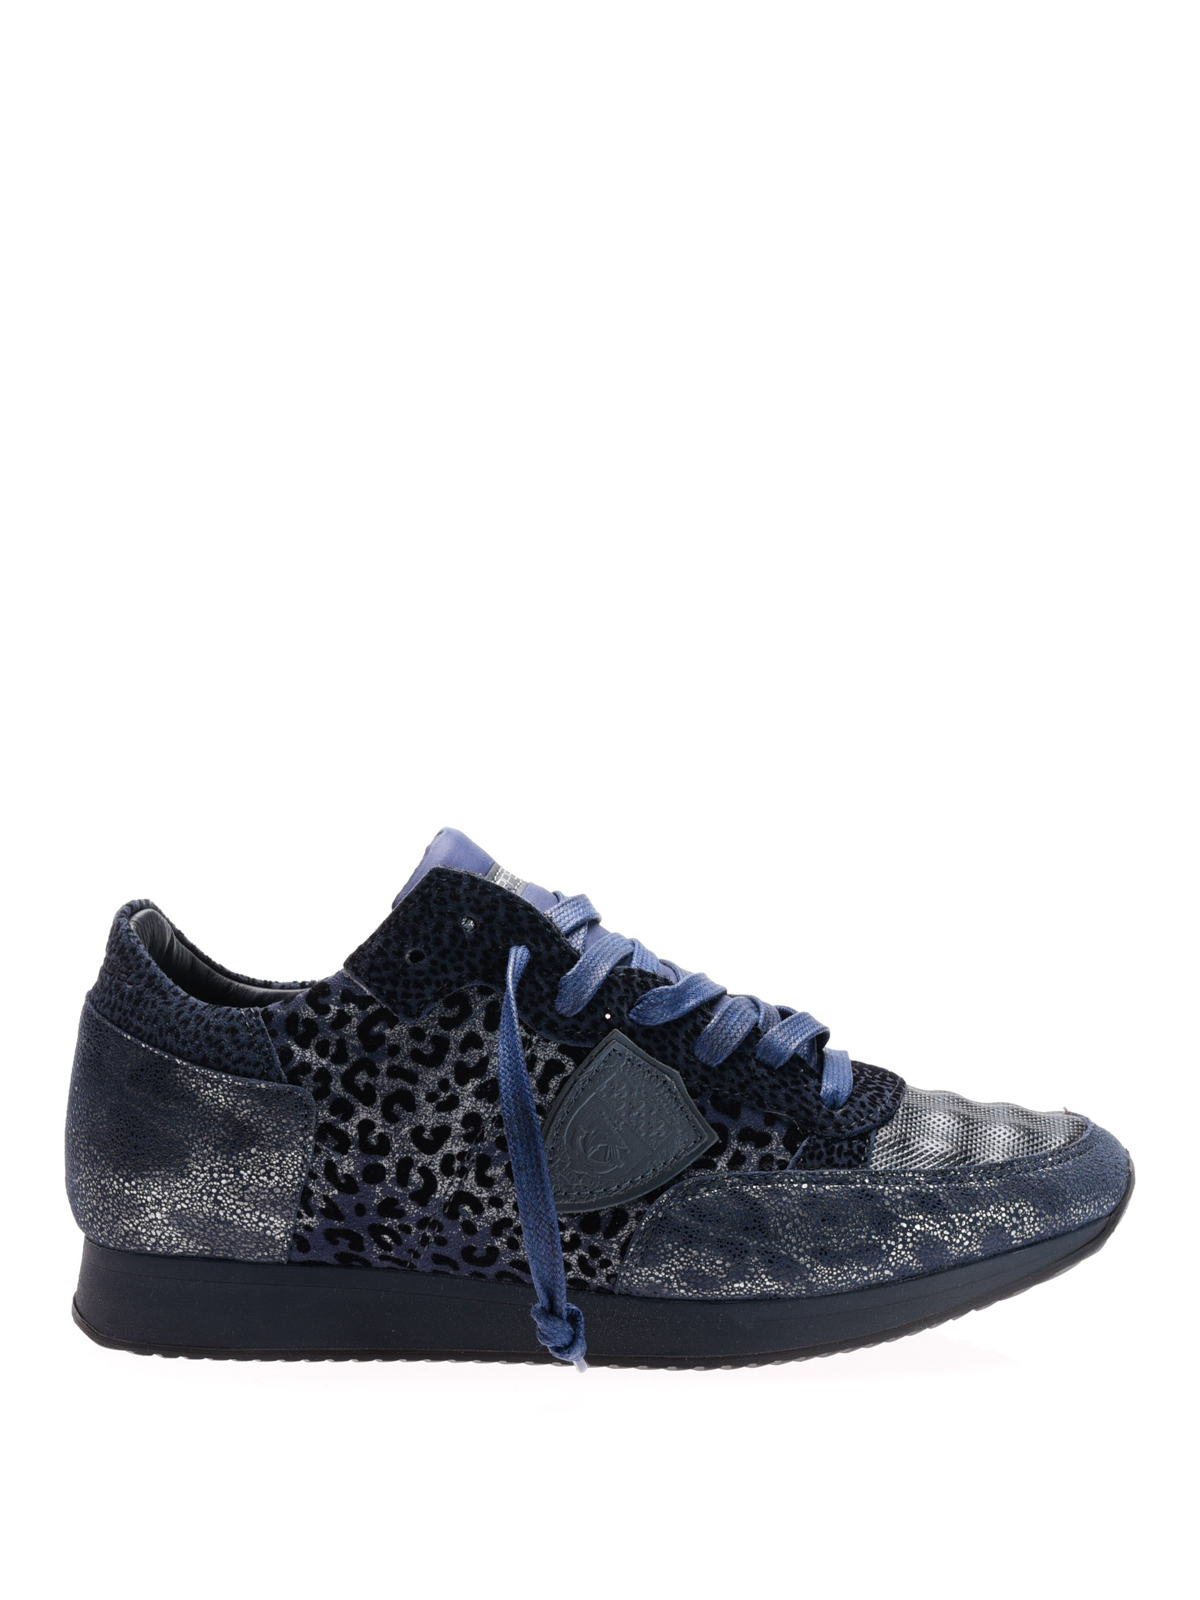 tropez animal print sneakers by philippe model trainers ikrix. Black Bedroom Furniture Sets. Home Design Ideas